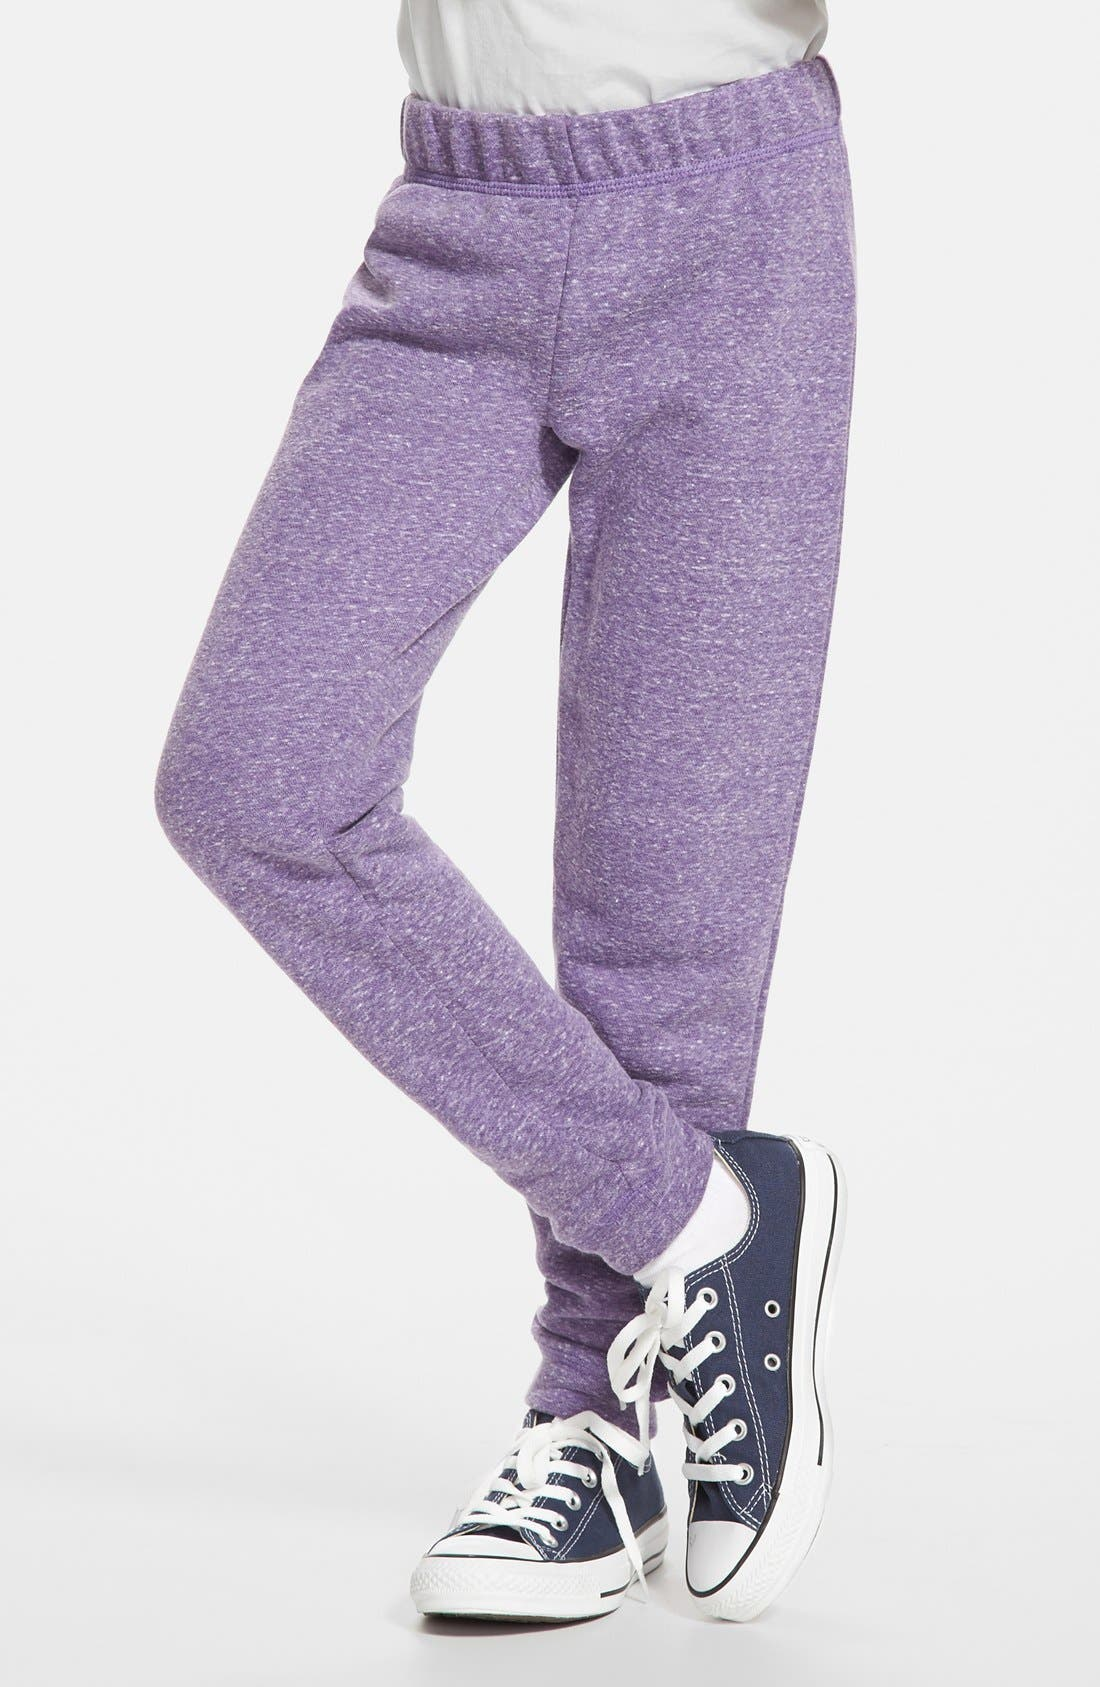 Alternate Image 1 Selected - Peek 'Logan' French Terry Pants (Toddler Girls, Little Girls & Big Girls)